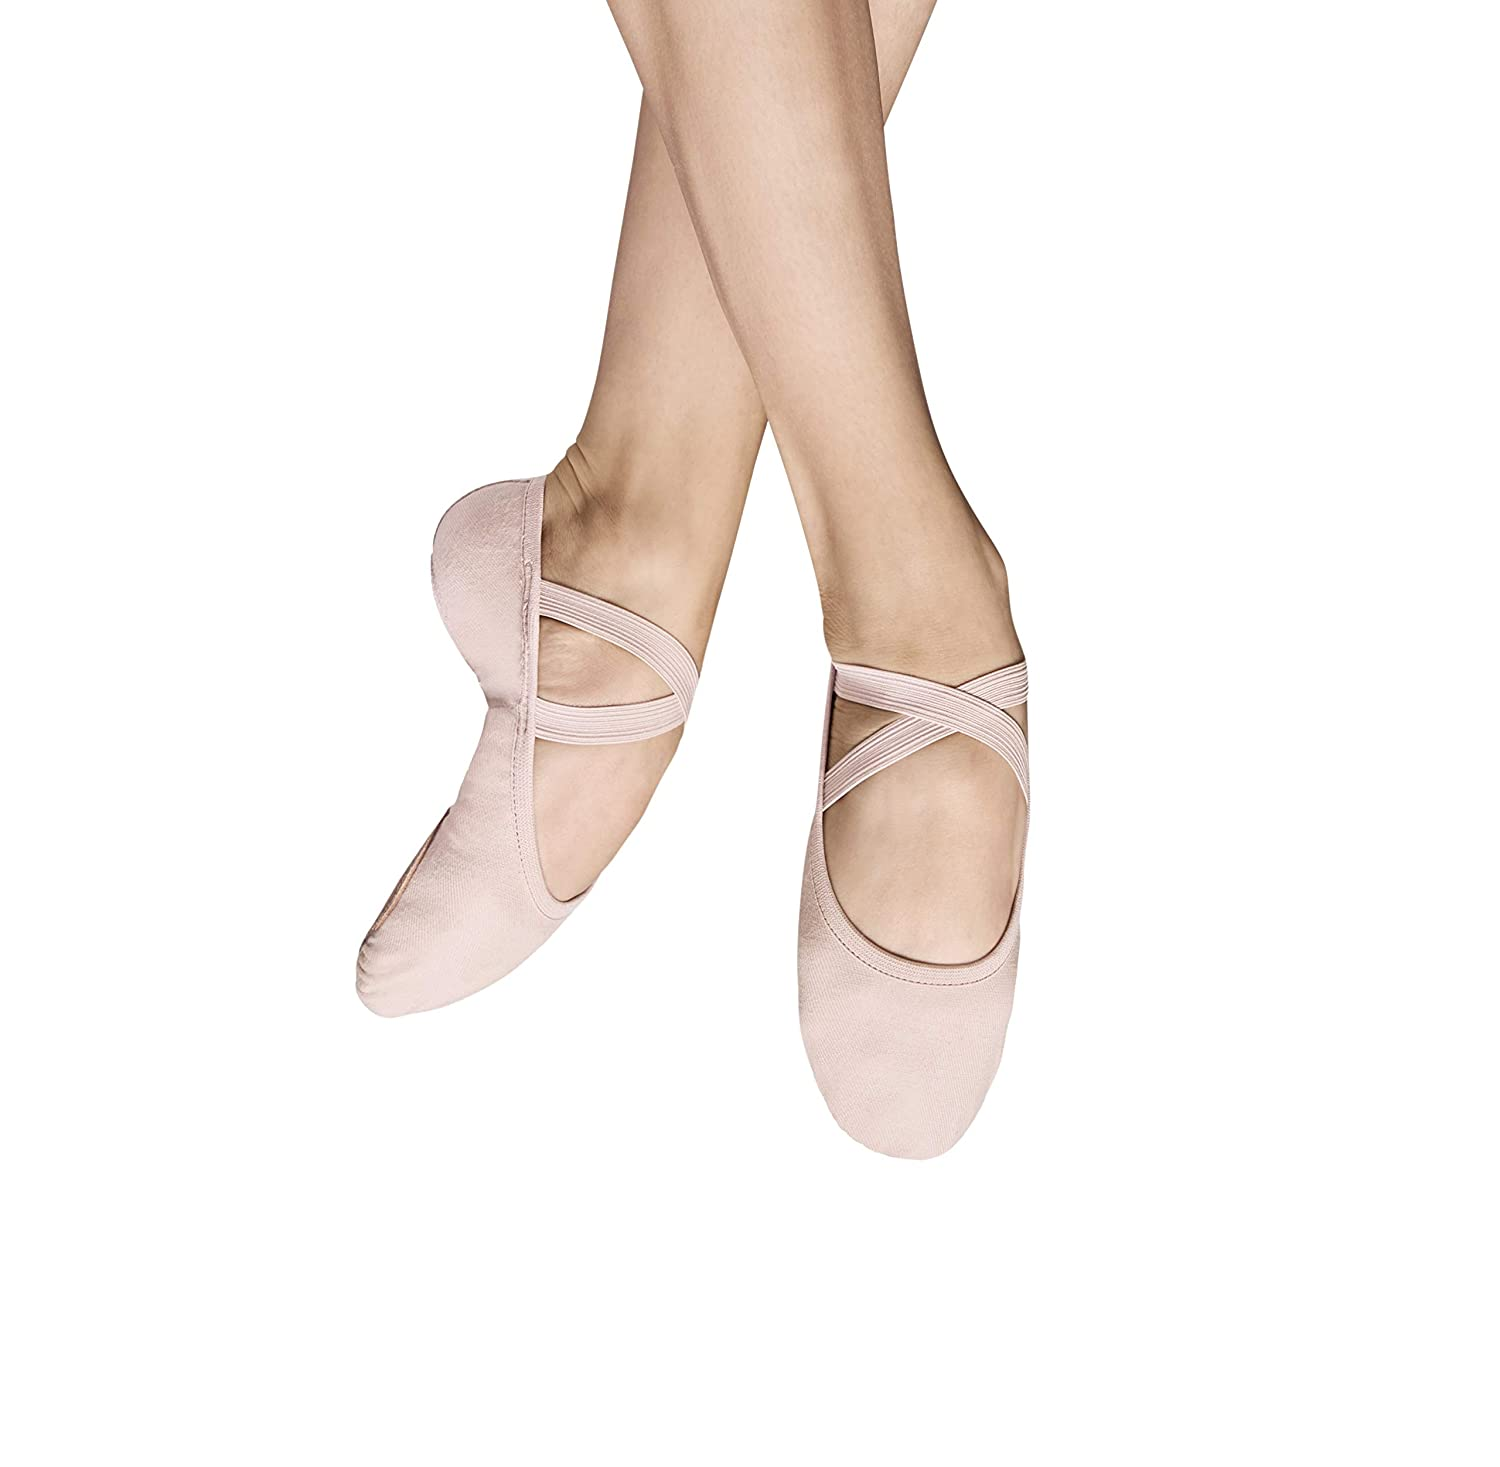 数量限定価格!! [Bloch] Performa Ballet Shoe Fabric Flat US B076CR873M Fabric 10 C C US Toddler|シアターピンク シアターピンク 10 C US Toddler, 癒し空間 One's Garden&Plants:e16902d1 --- a0267596.xsph.ru